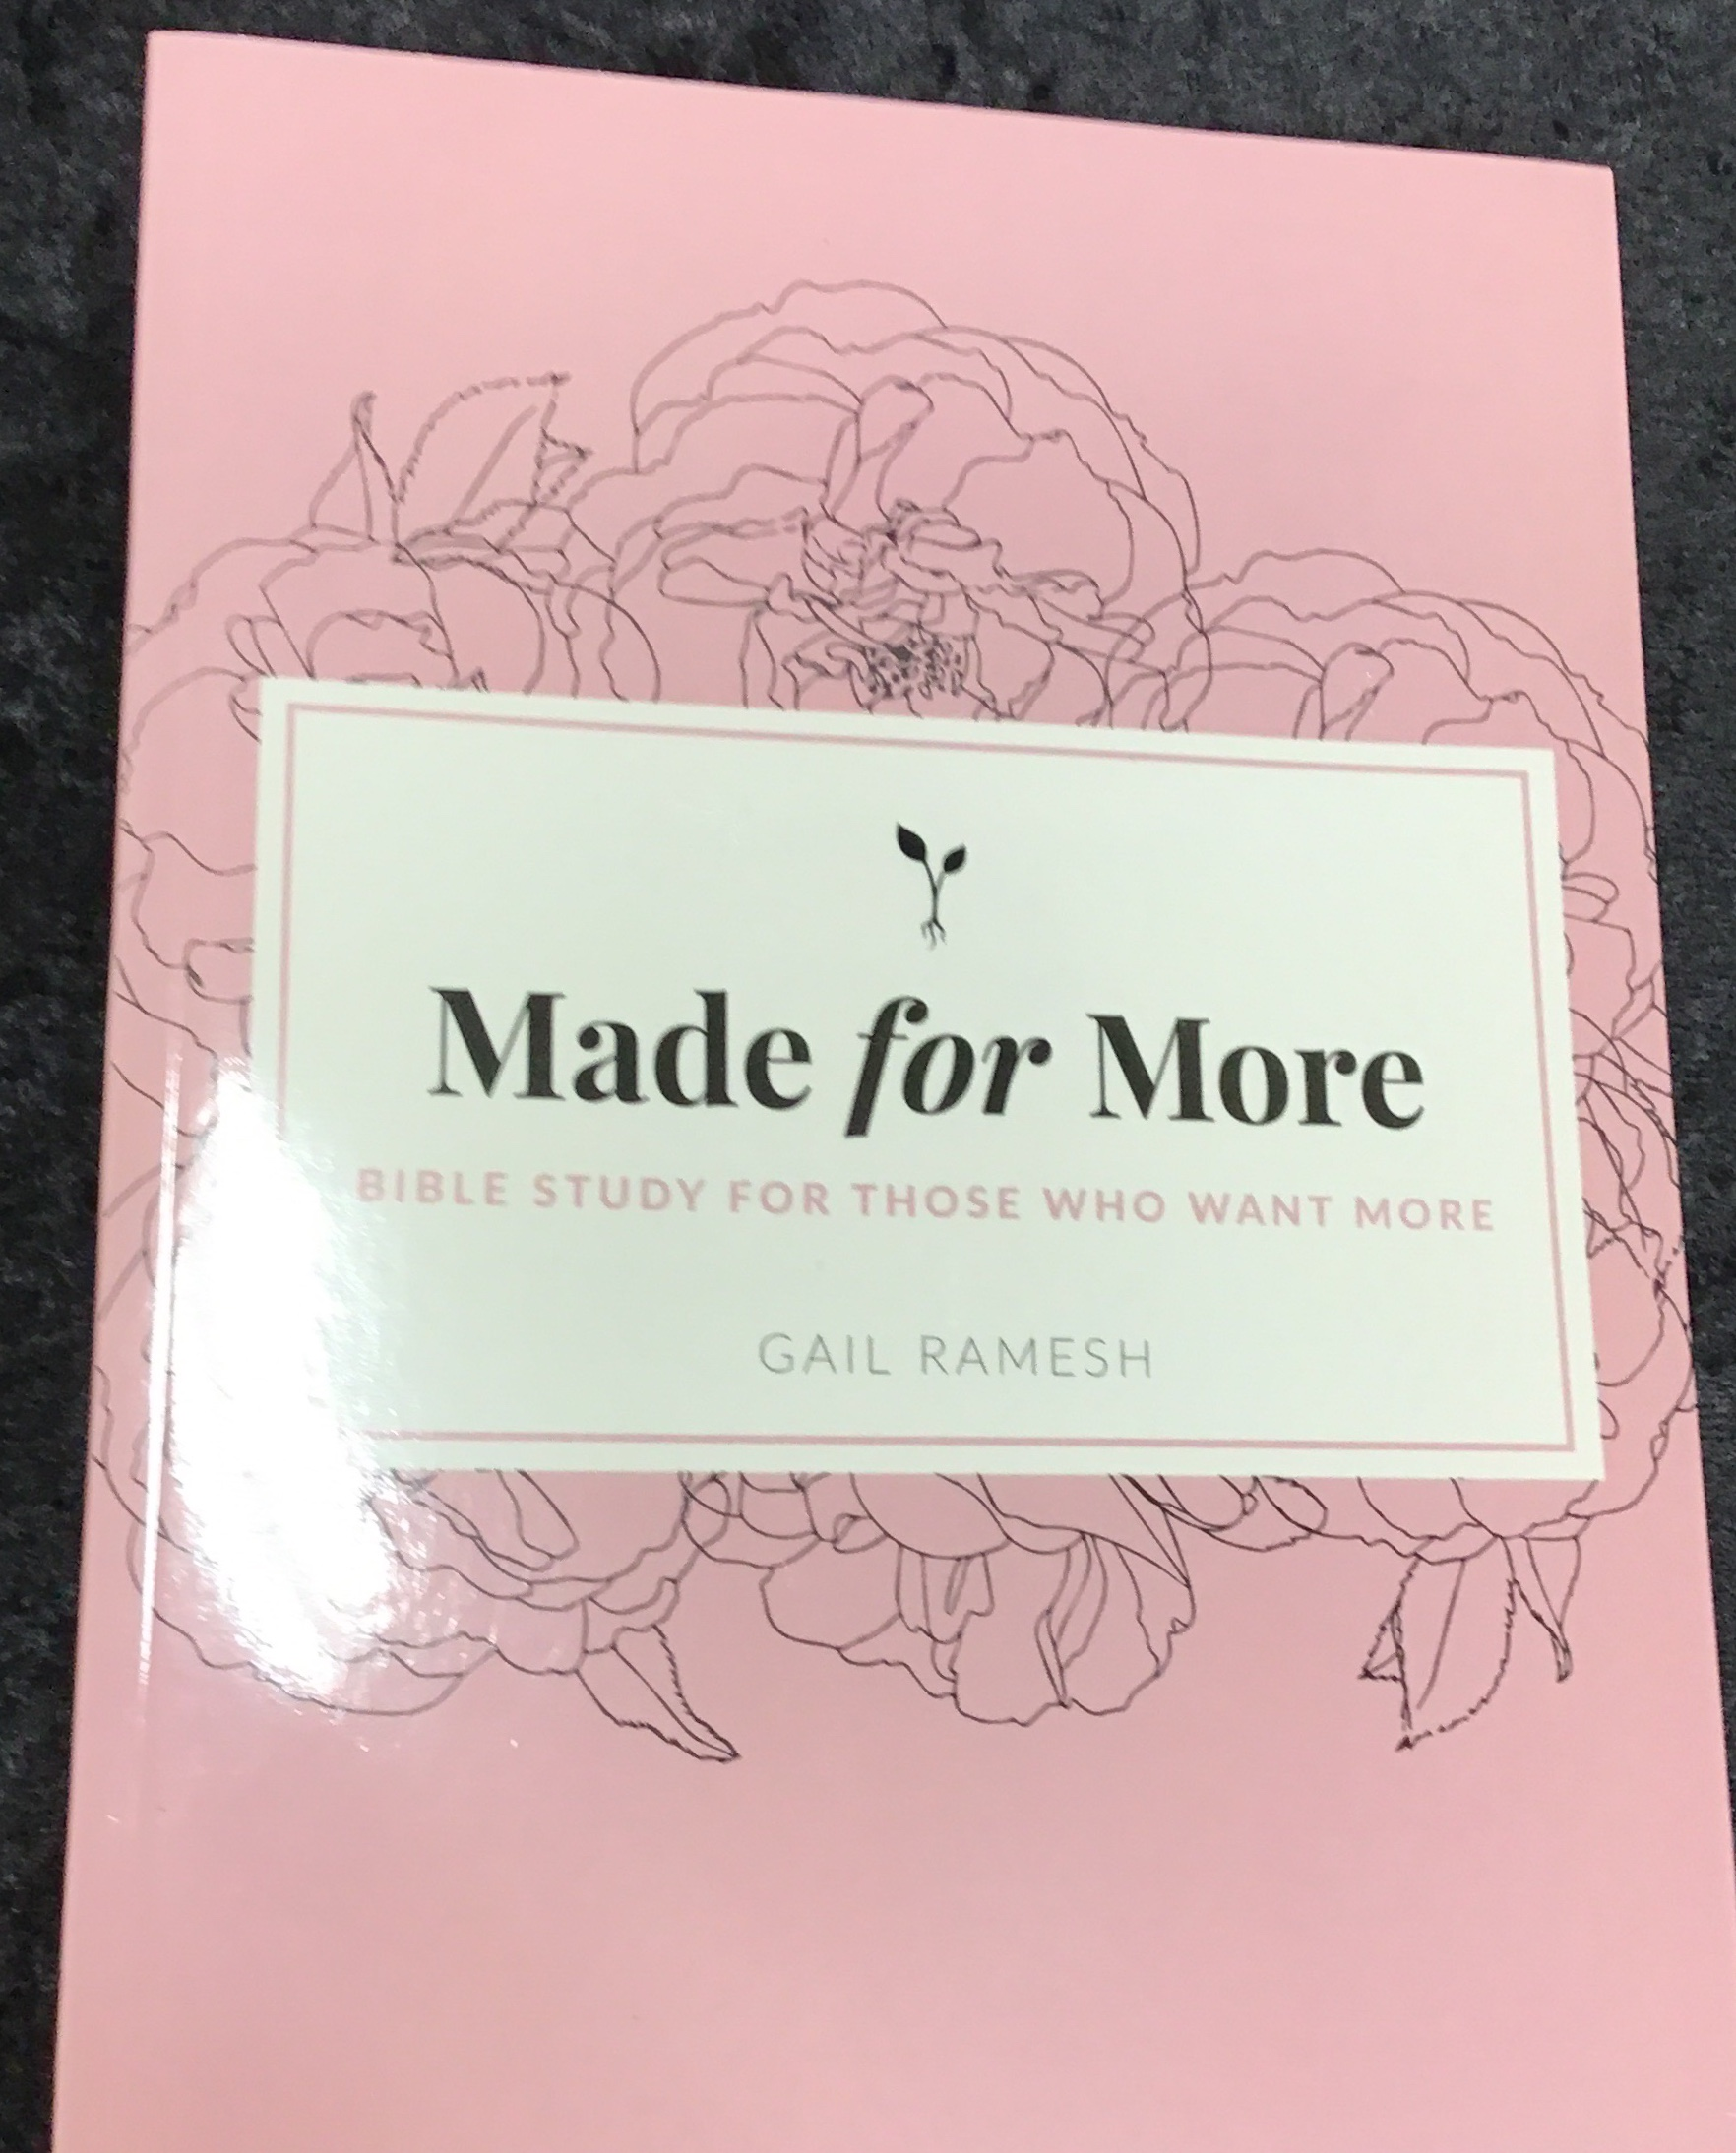 Made for More - Bible Study